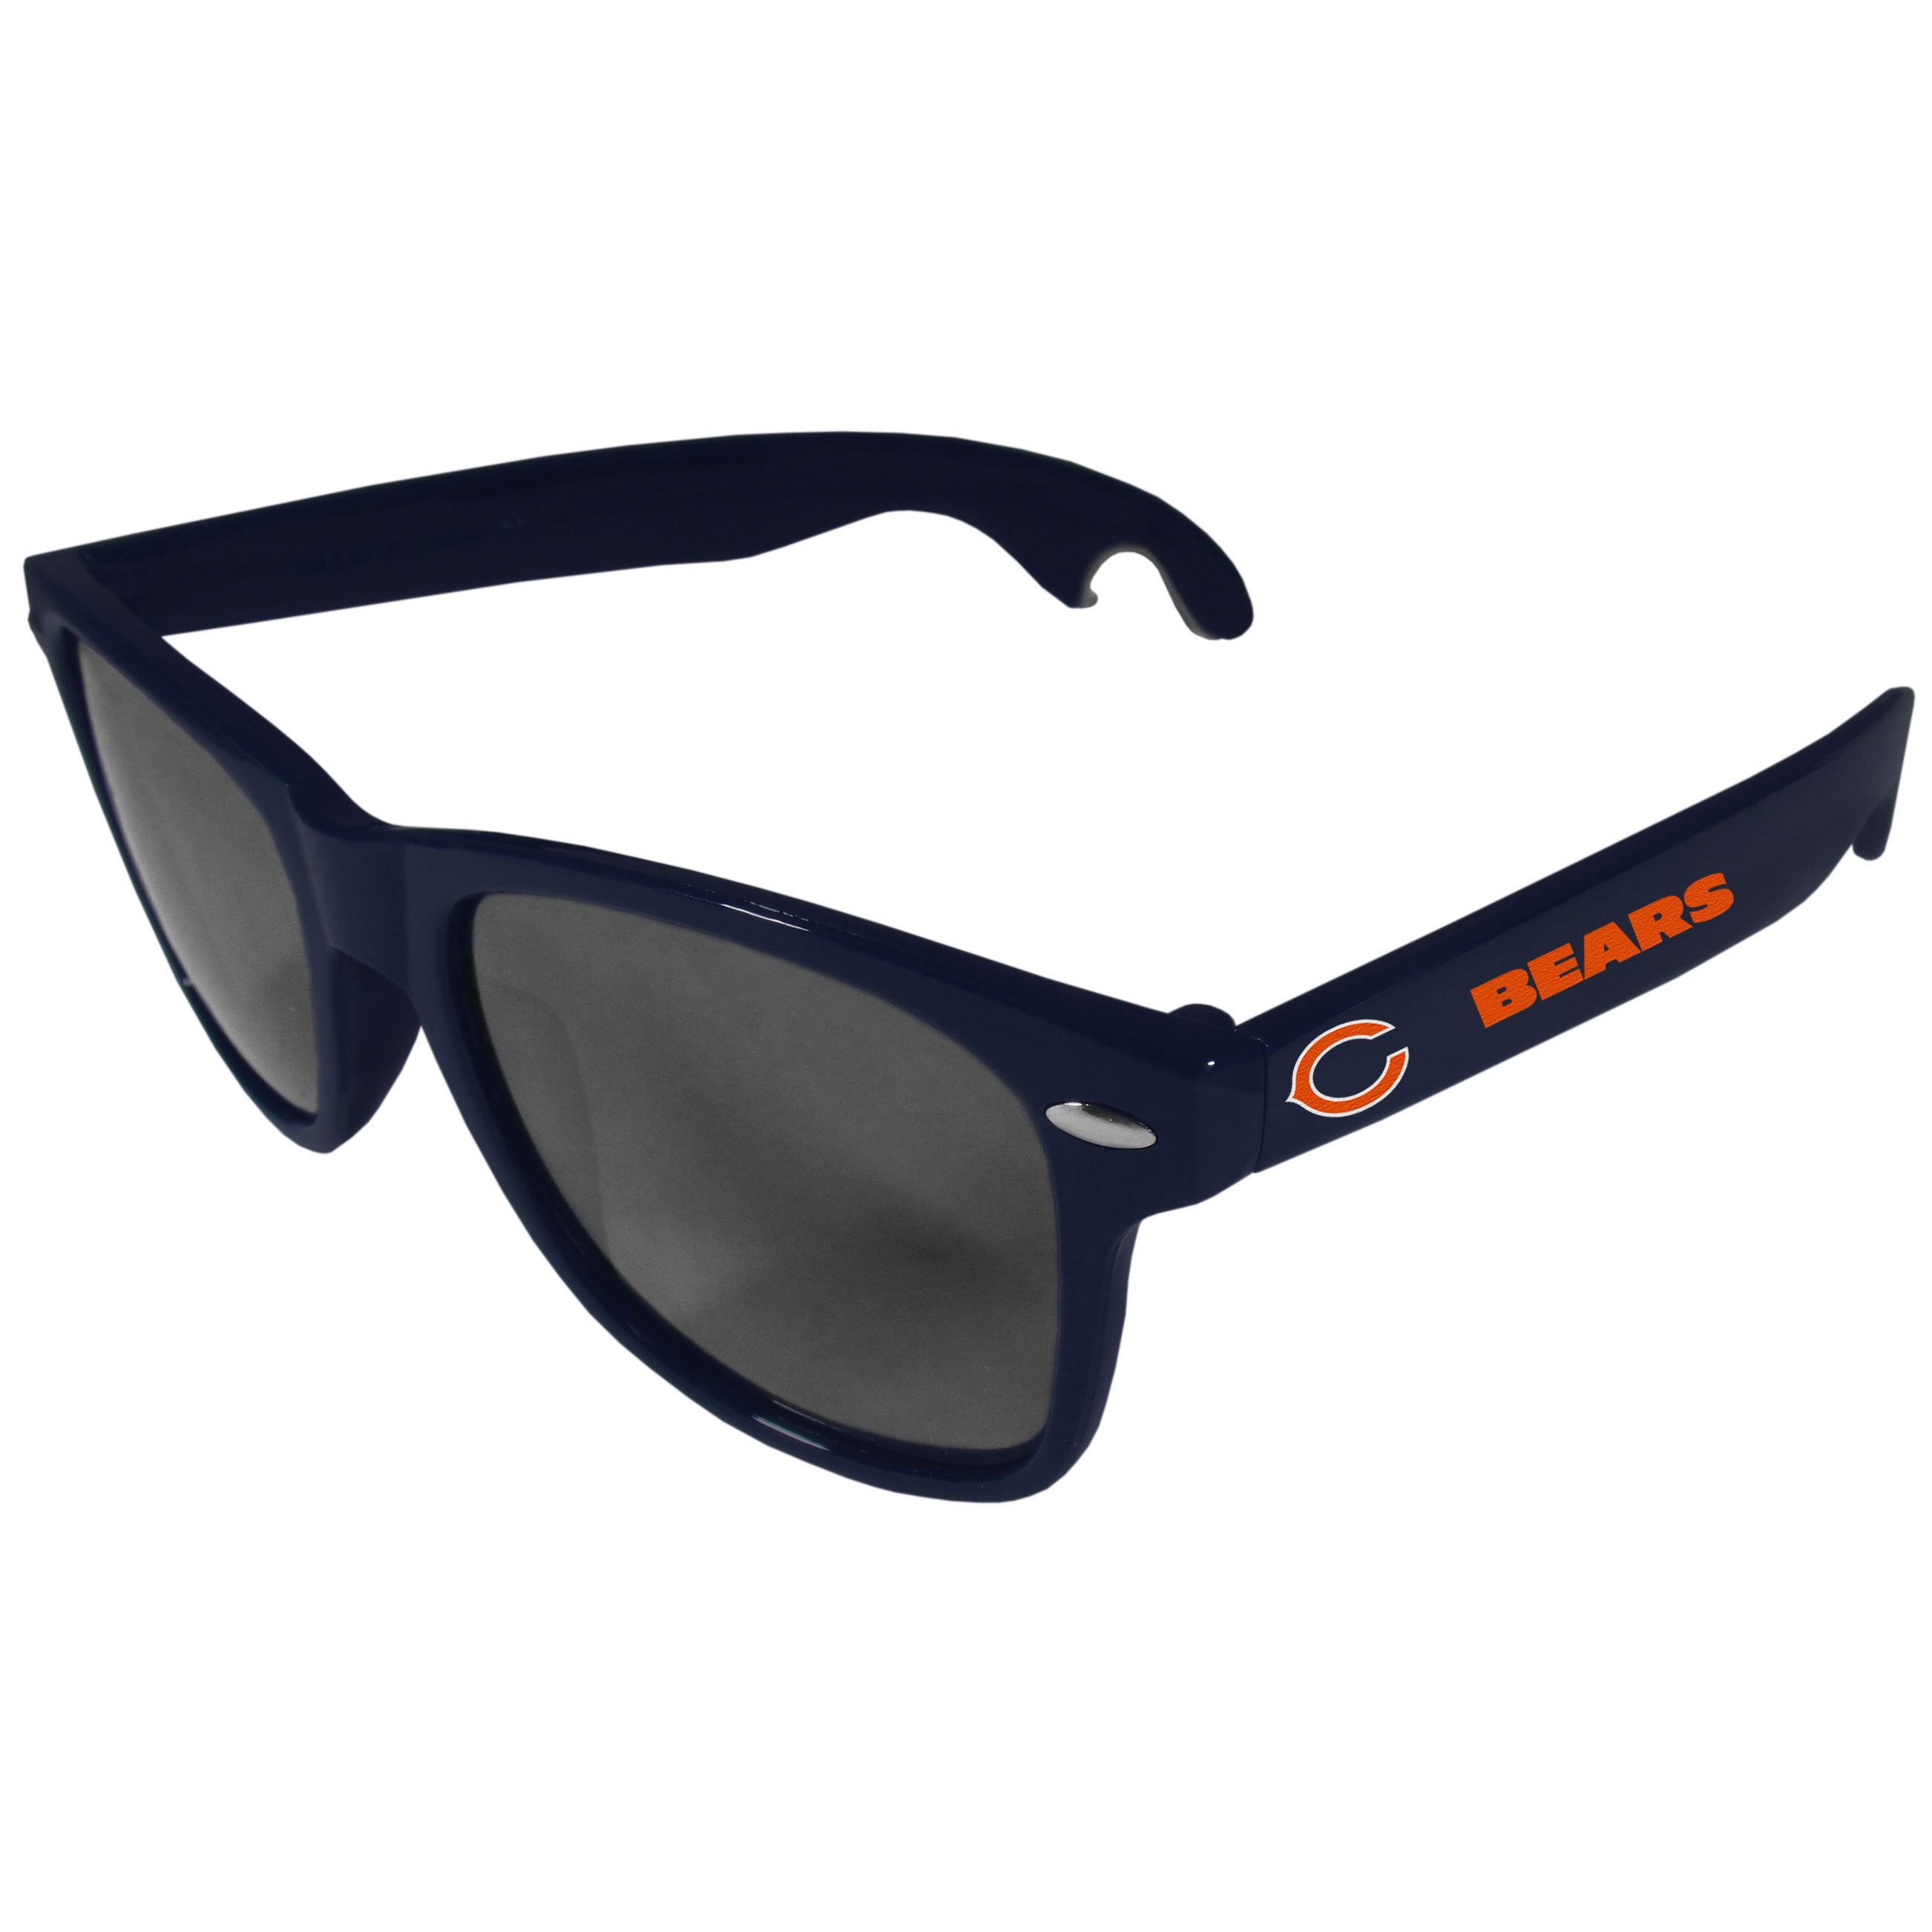 Chicago Bears Beachfarer Bottle Opener Sunglasses, Dark Blue - Seriously, these sunglasses open bottles! Keep the party going with these amazing Chicago Bears bottle opener sunglasses. The stylish retro frames feature team designs on the arms and functional bottle openers on the end of the arms. Whether you are at the beach or having a backyard BBQ on game day, these shades will keep your eyes protected with 100% UVA/UVB protection and keep you hydrated with the handy bottle opener arms.